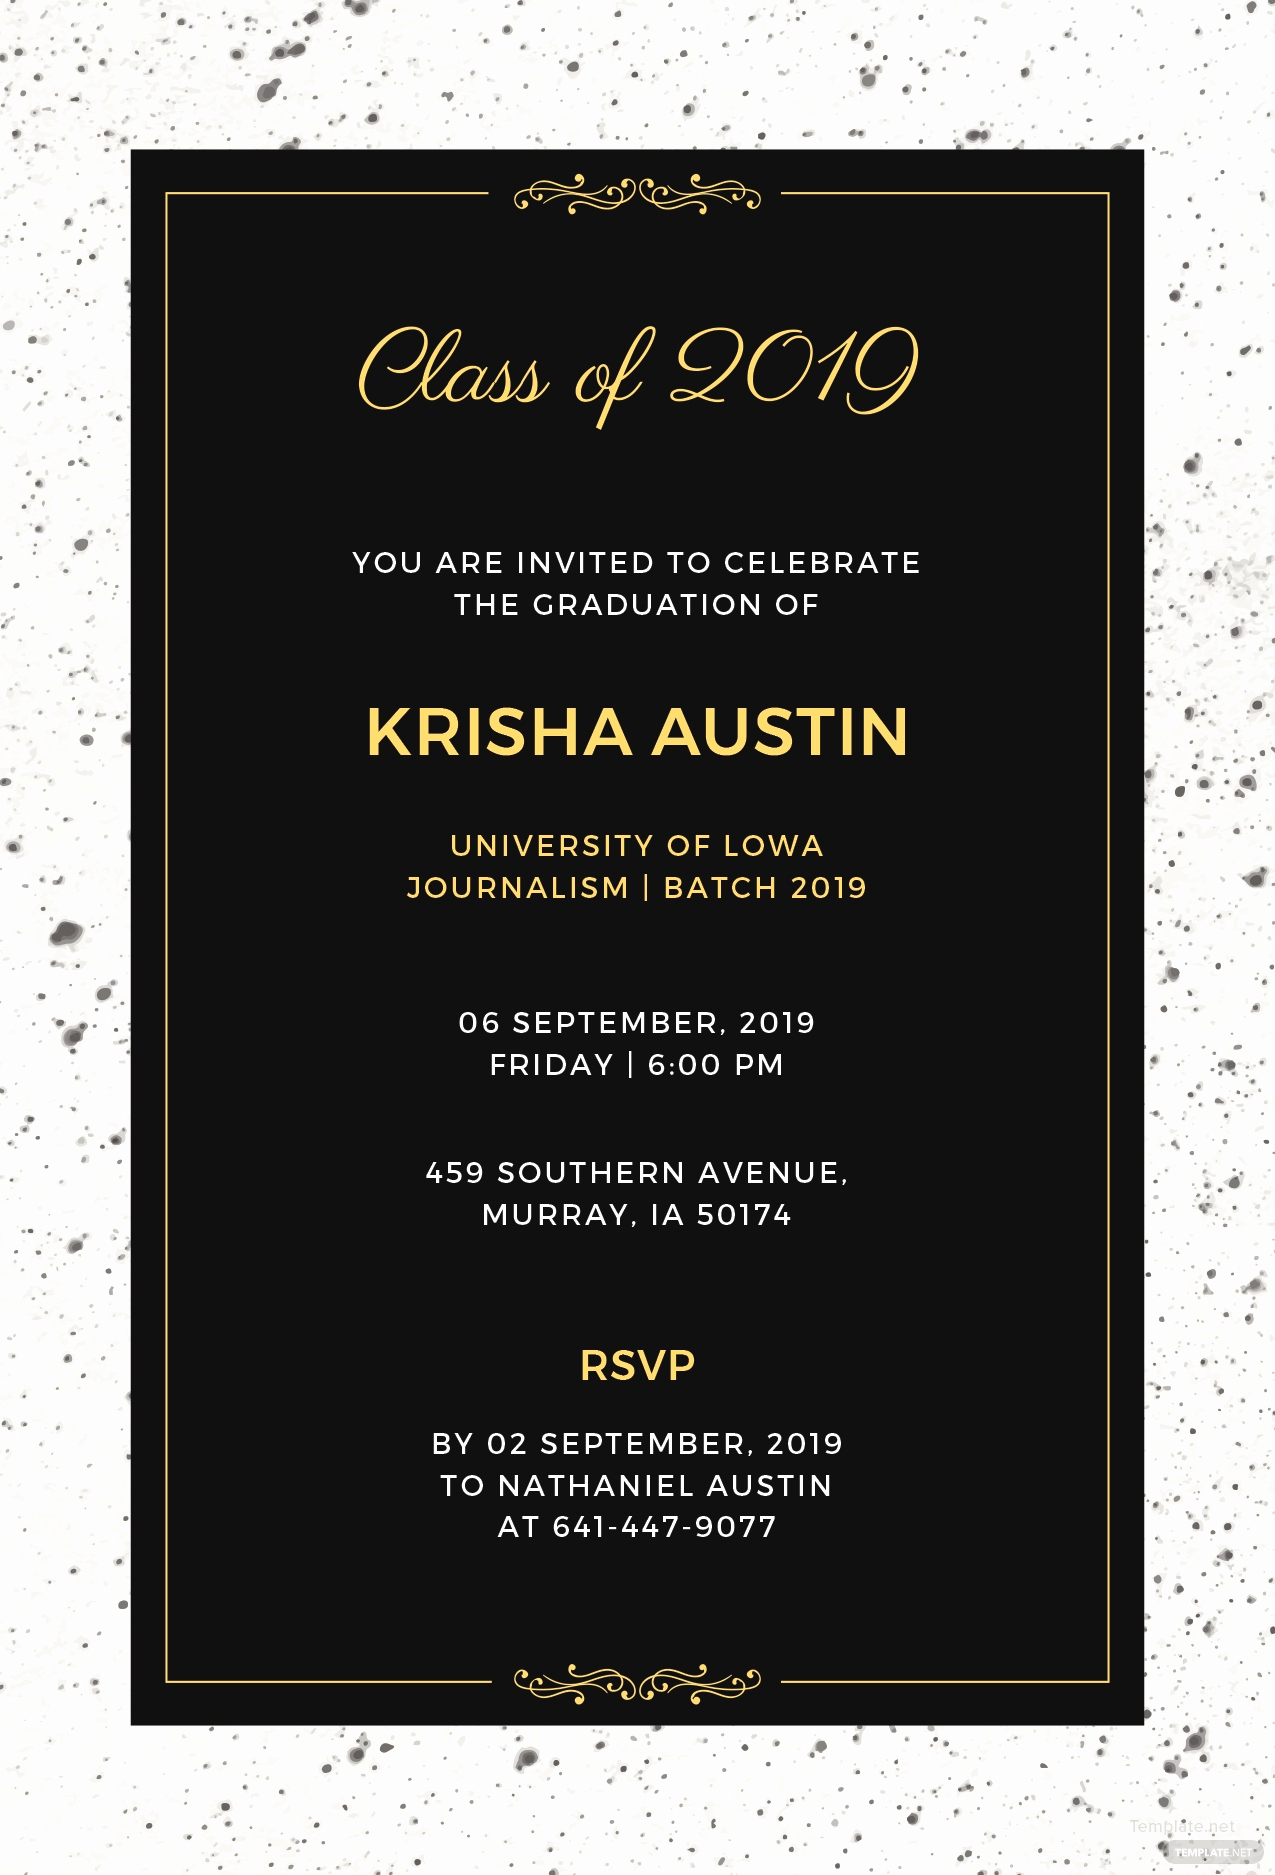 Free Graduation Invitation Templates Download Elegant Free Graduation Announcement Invitation Template In